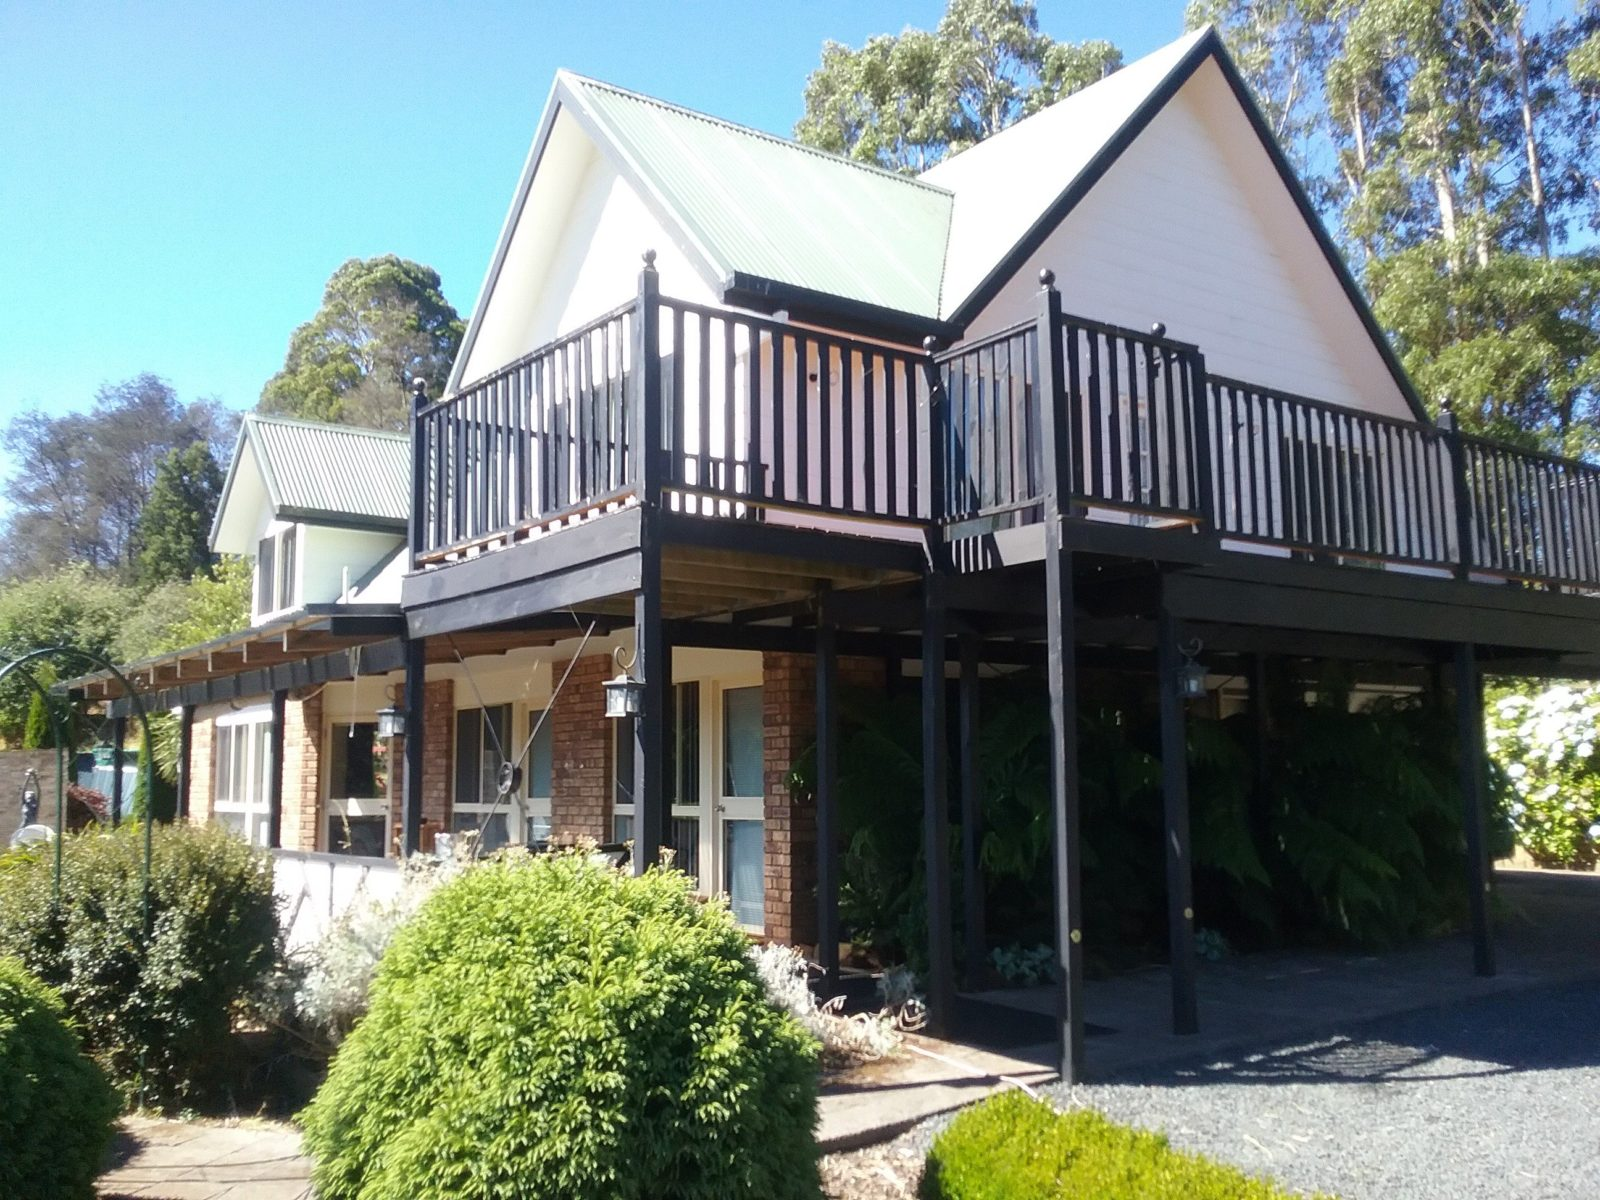 Robin's Nest Bed and Breakfast located centrally in the Cradle Coast area of beautiful NW Tasmania